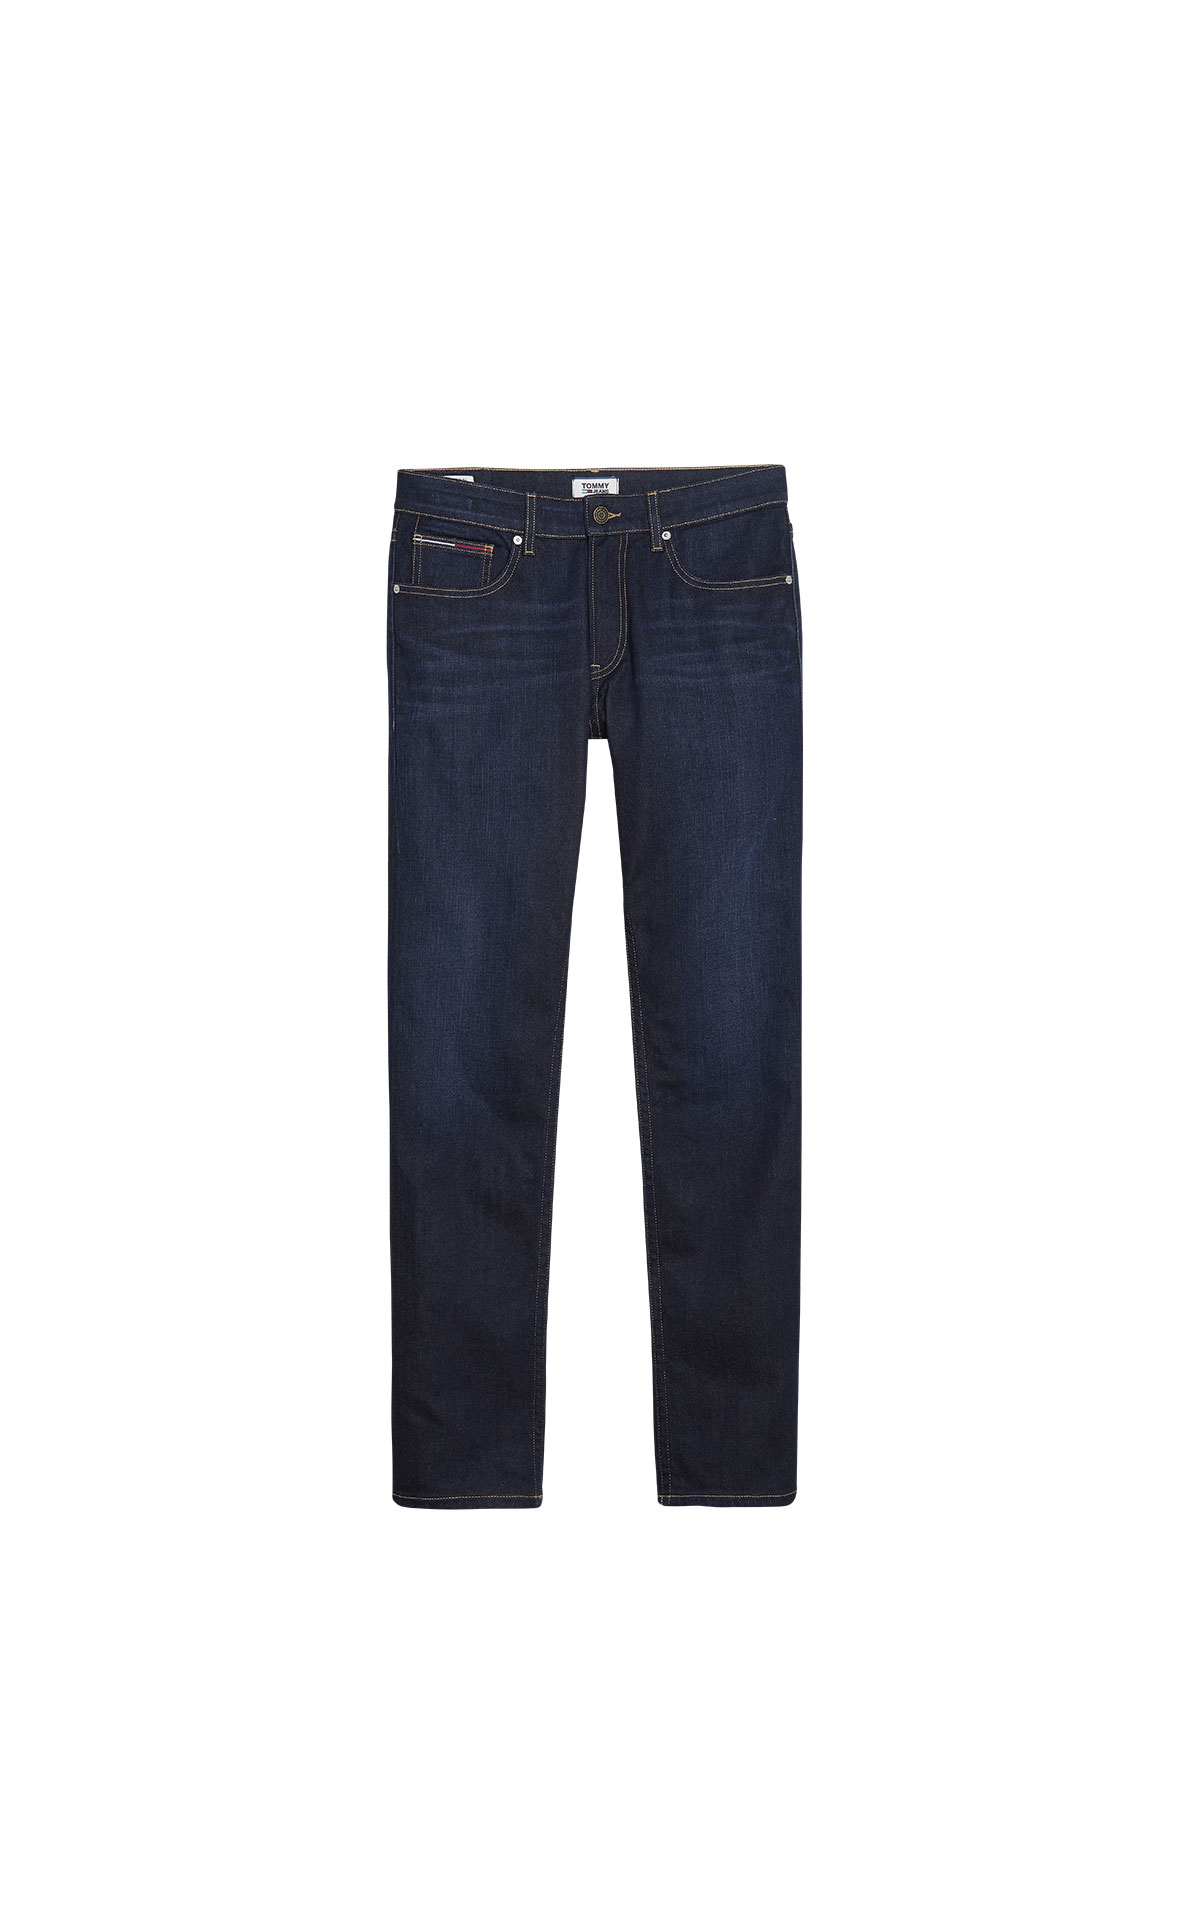 Tommy hilfiger denim ryan straight jeans at The Bicester Village Shopping Collection